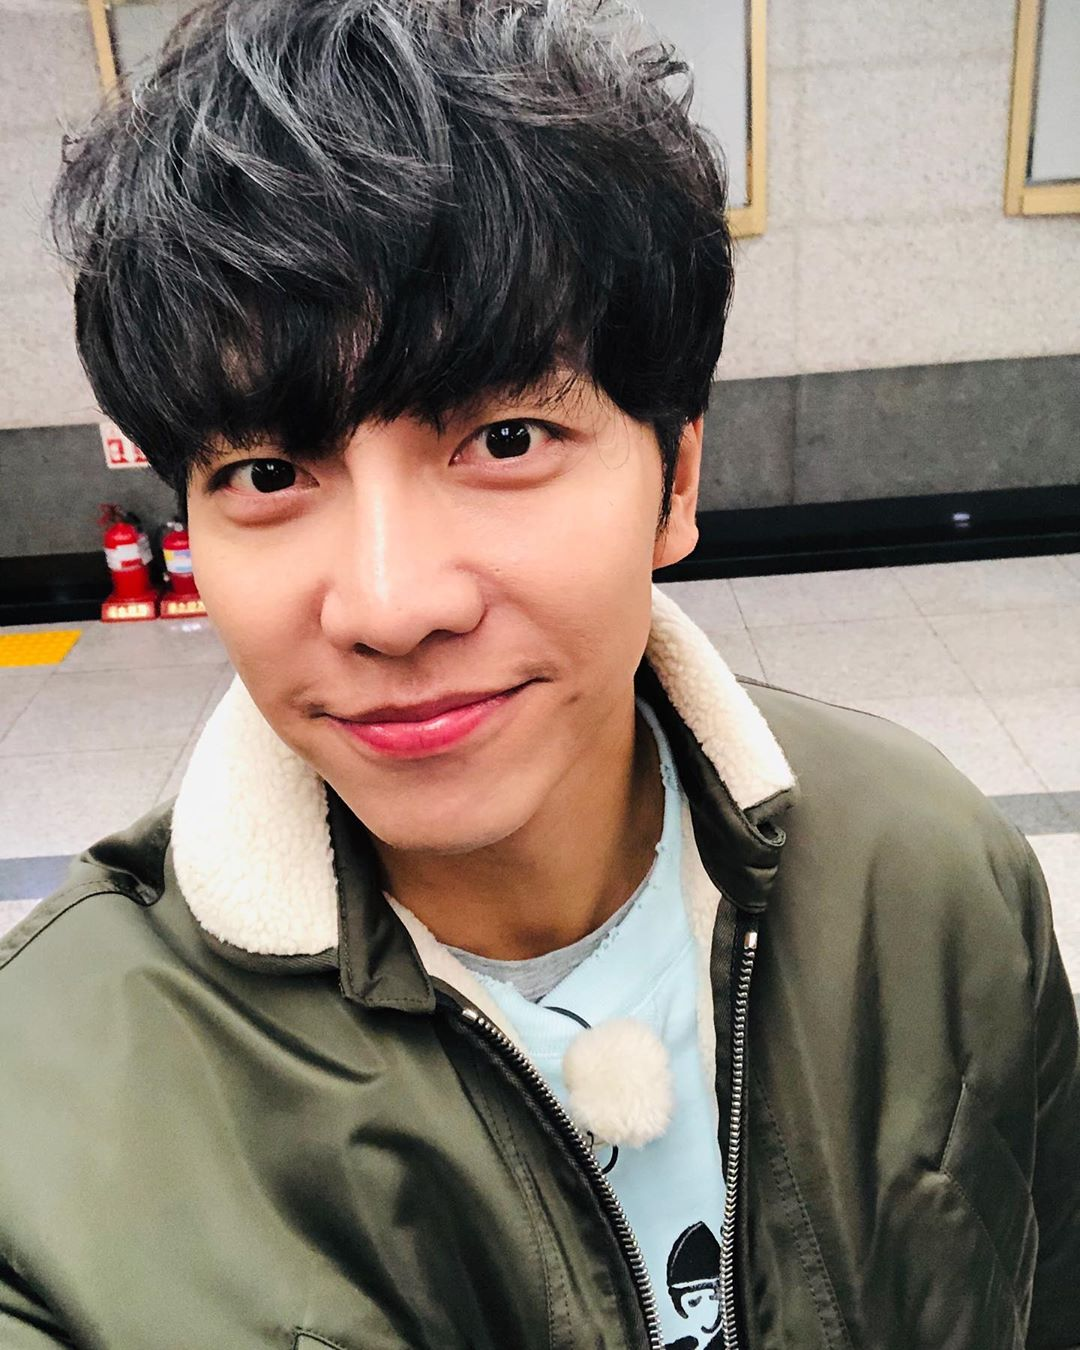 Lee Seung Gi South Korean Singer, Actor, Host